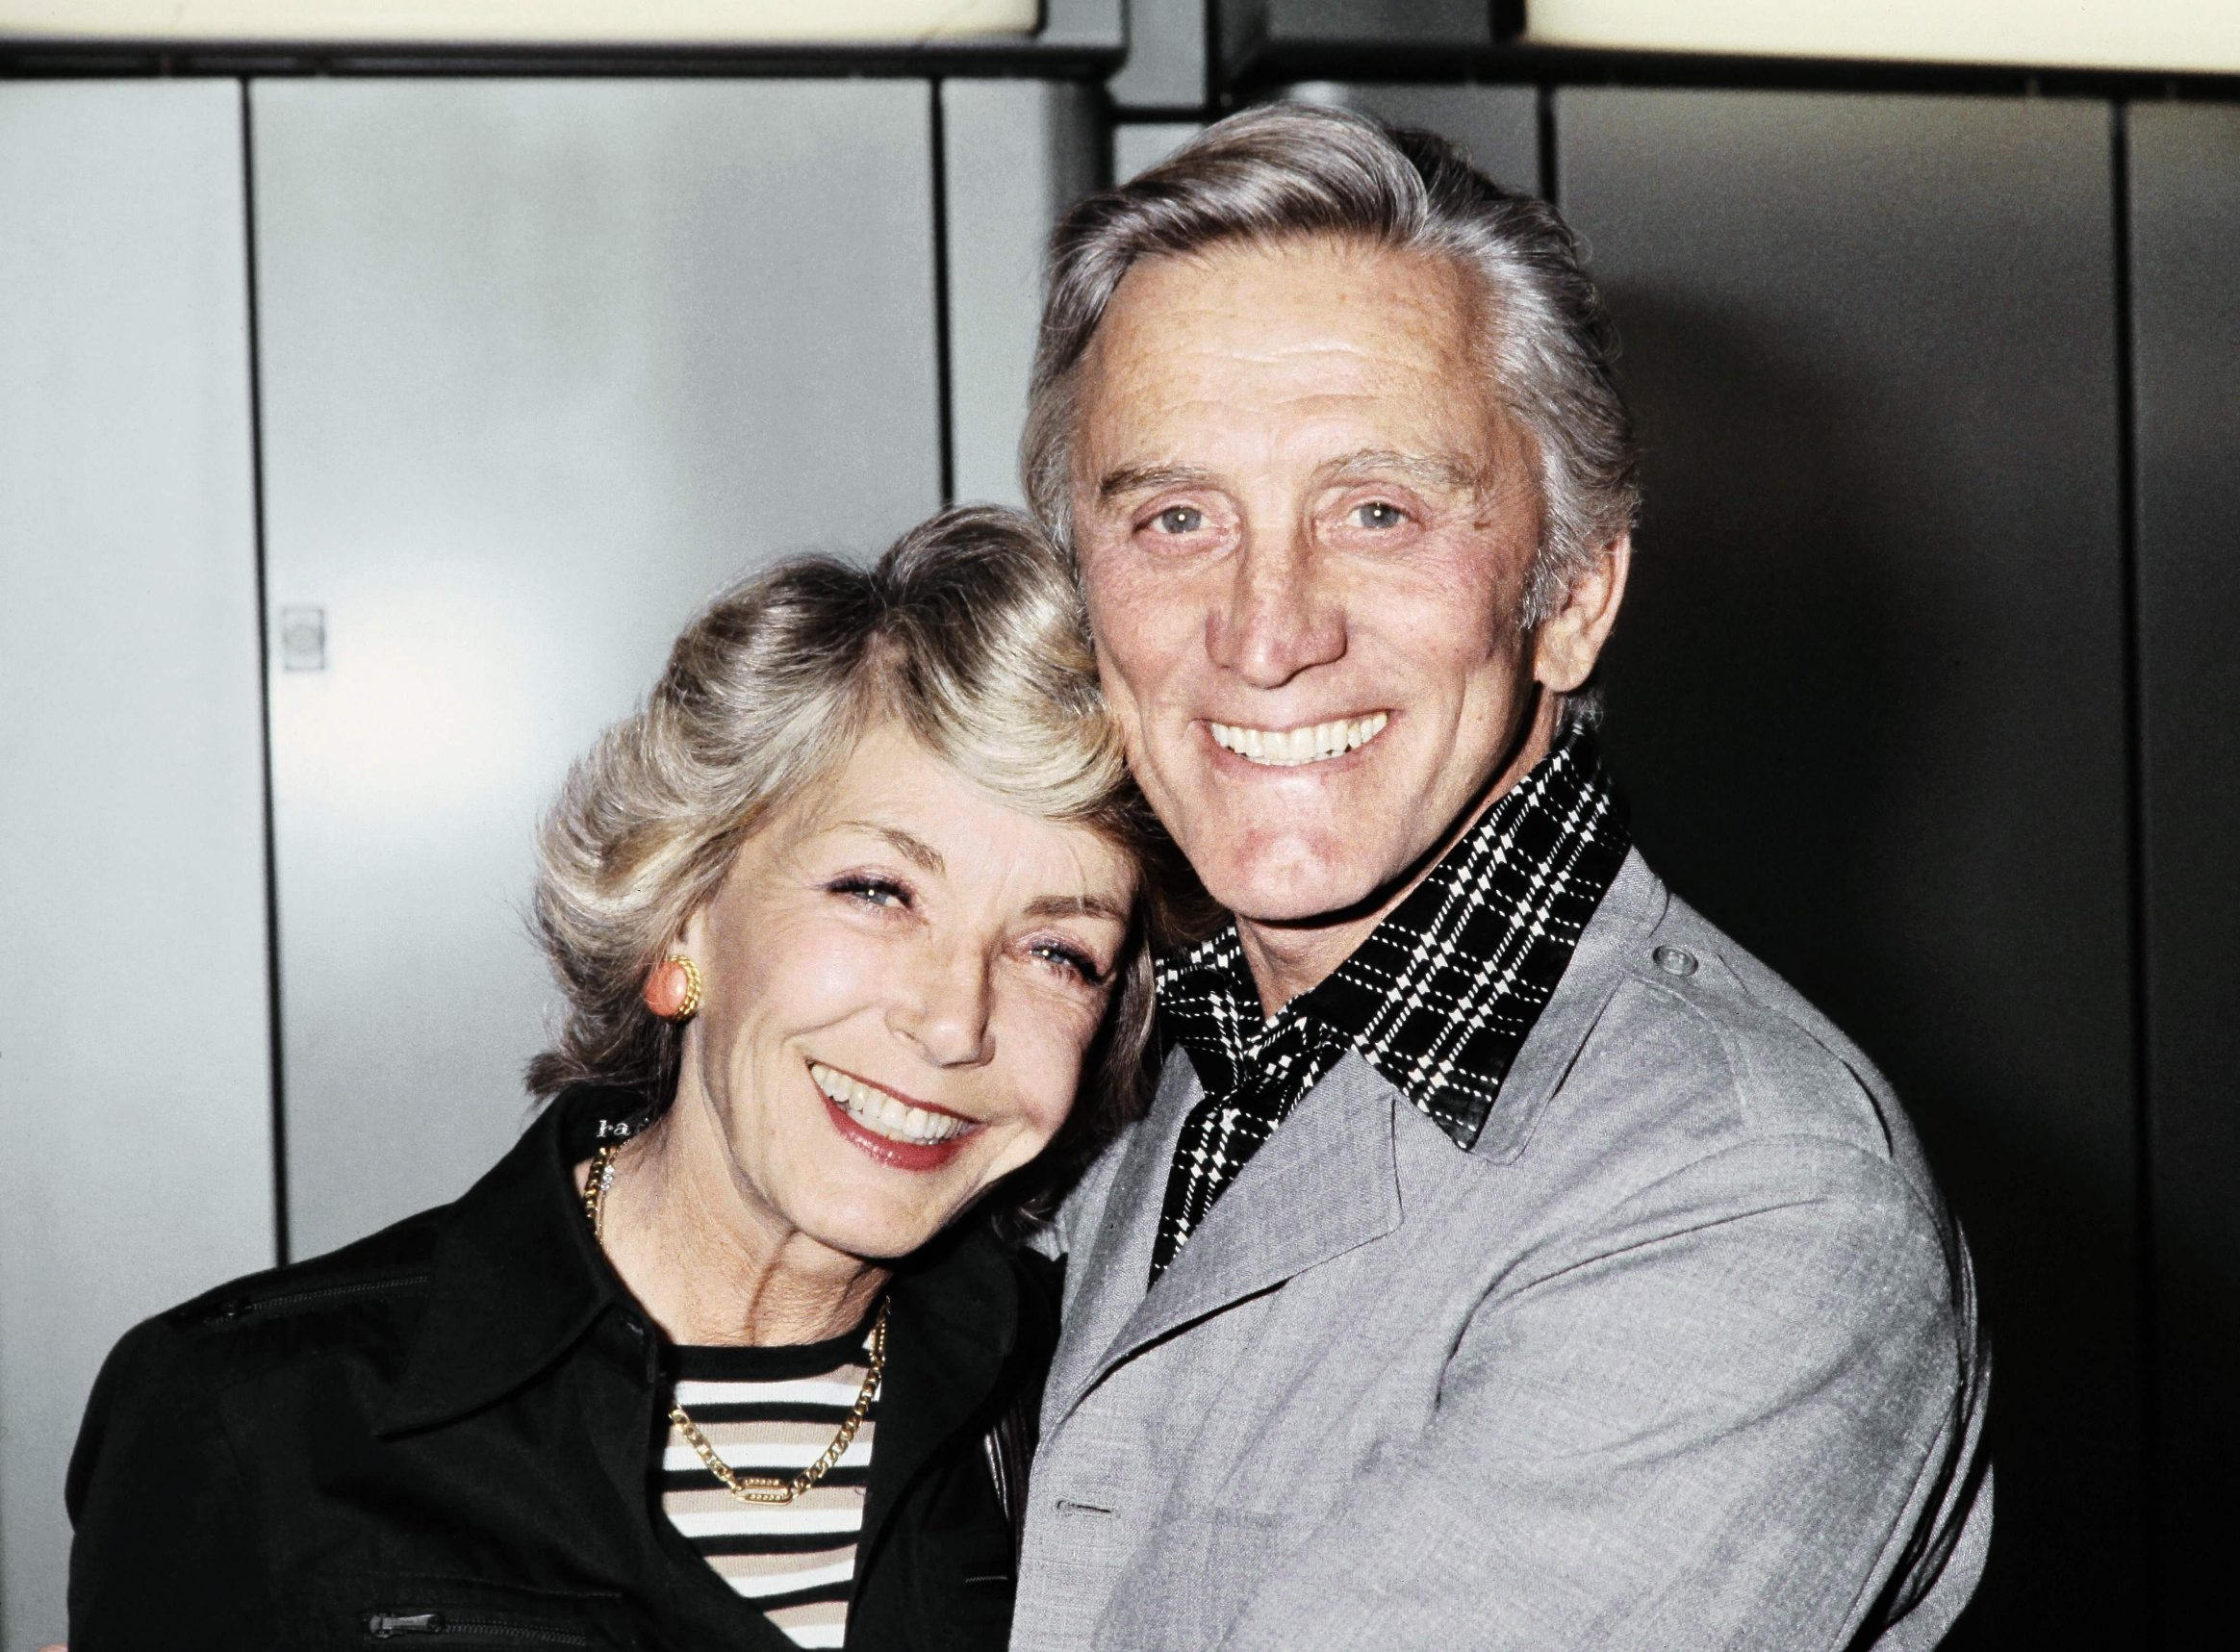 (FILES) In this file photo taken on September 1, 1978 US actor Kirk Douglas and his wife Anne pose at Roissy Charles-de-Gaulle airport near Paris. - US silver screen legend Kirk Douglas, the son of Jewish Russian immigrants who rose through the ranks to become one of Hollywood's biggest-ever stars, has died at 103, his family said on February 5, 2020. (Photo by - / AFP)